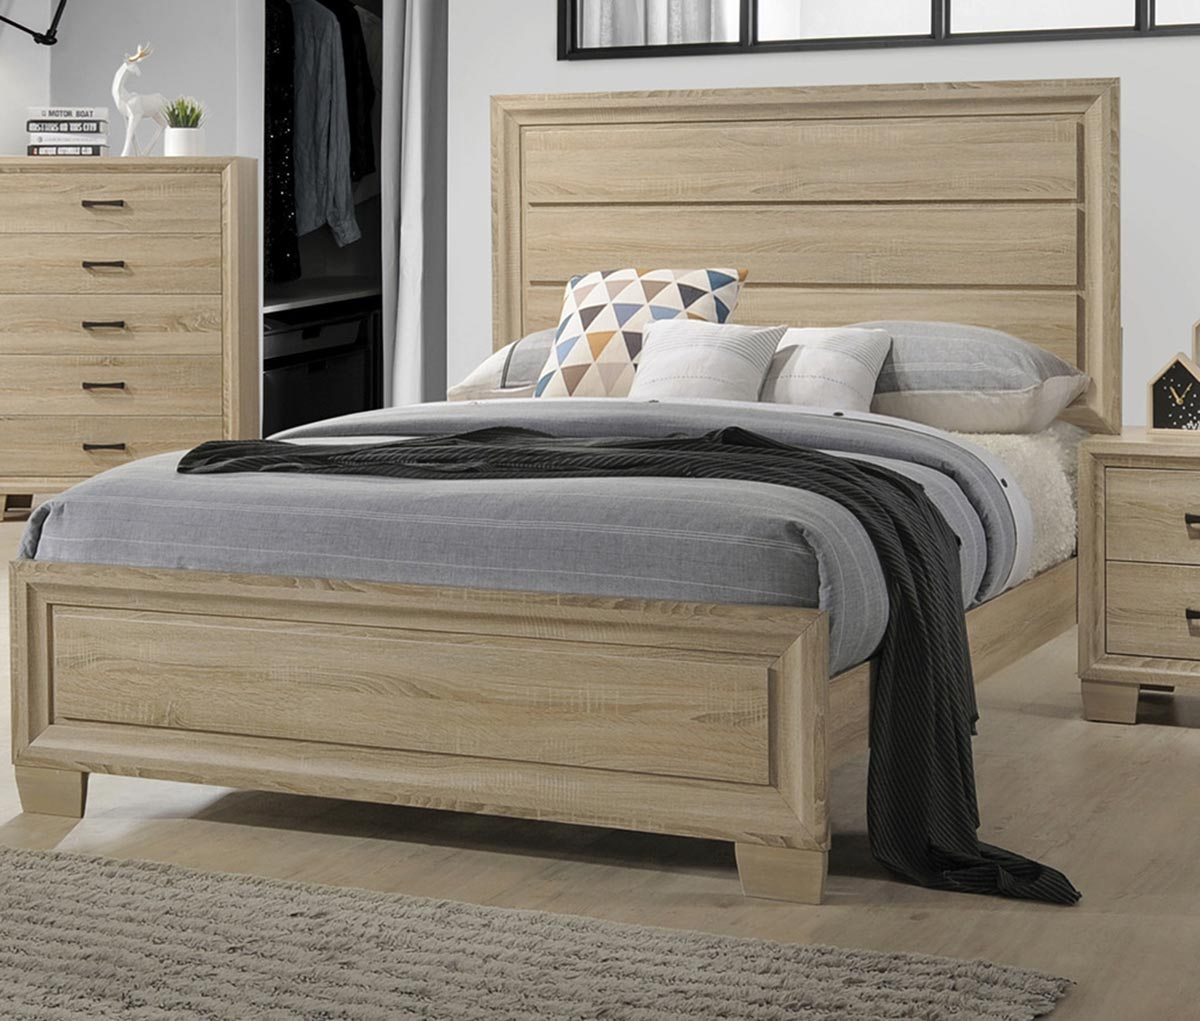 Coaster Vernon Bed - White Washed Oak